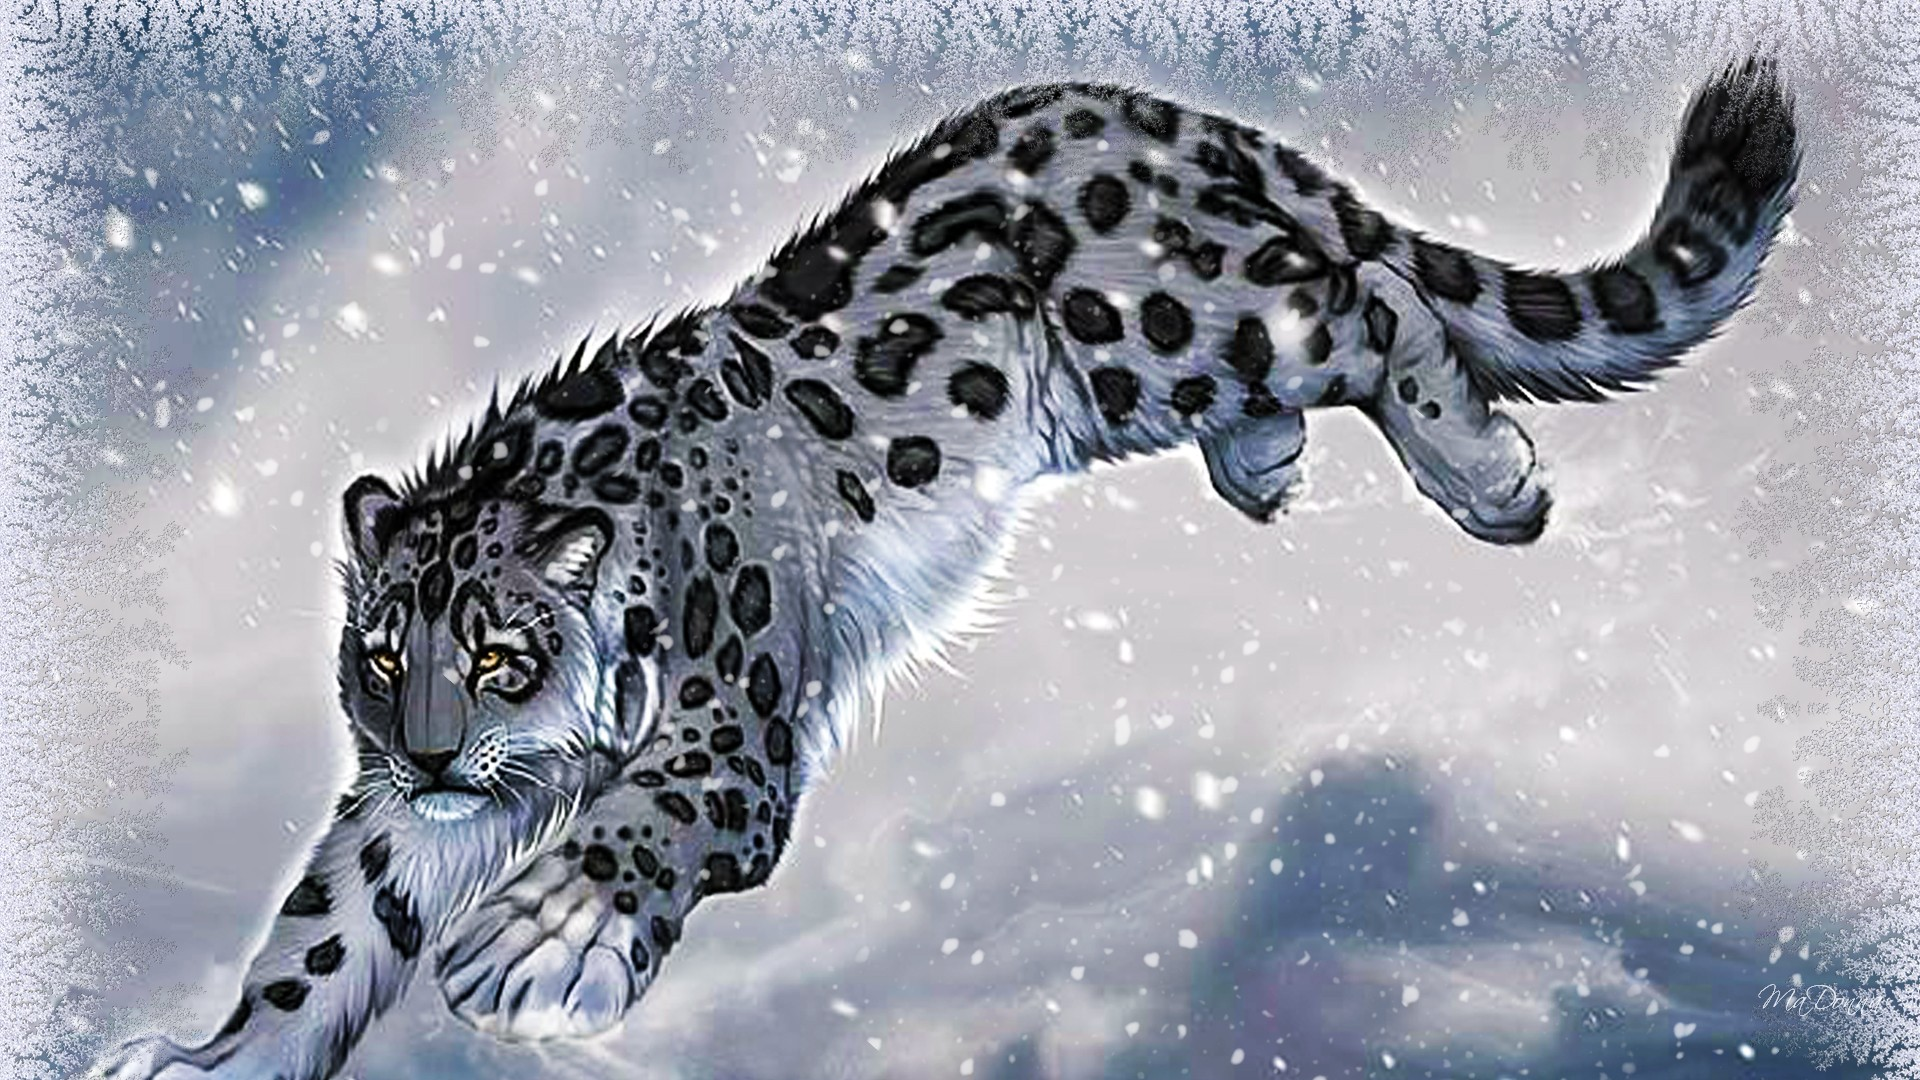 Image amazing animal snow leopard high resolution wallpaper for amazing animal snow leopard high resolution wallpaper for desktop background download snow leopard images freeg voltagebd Images